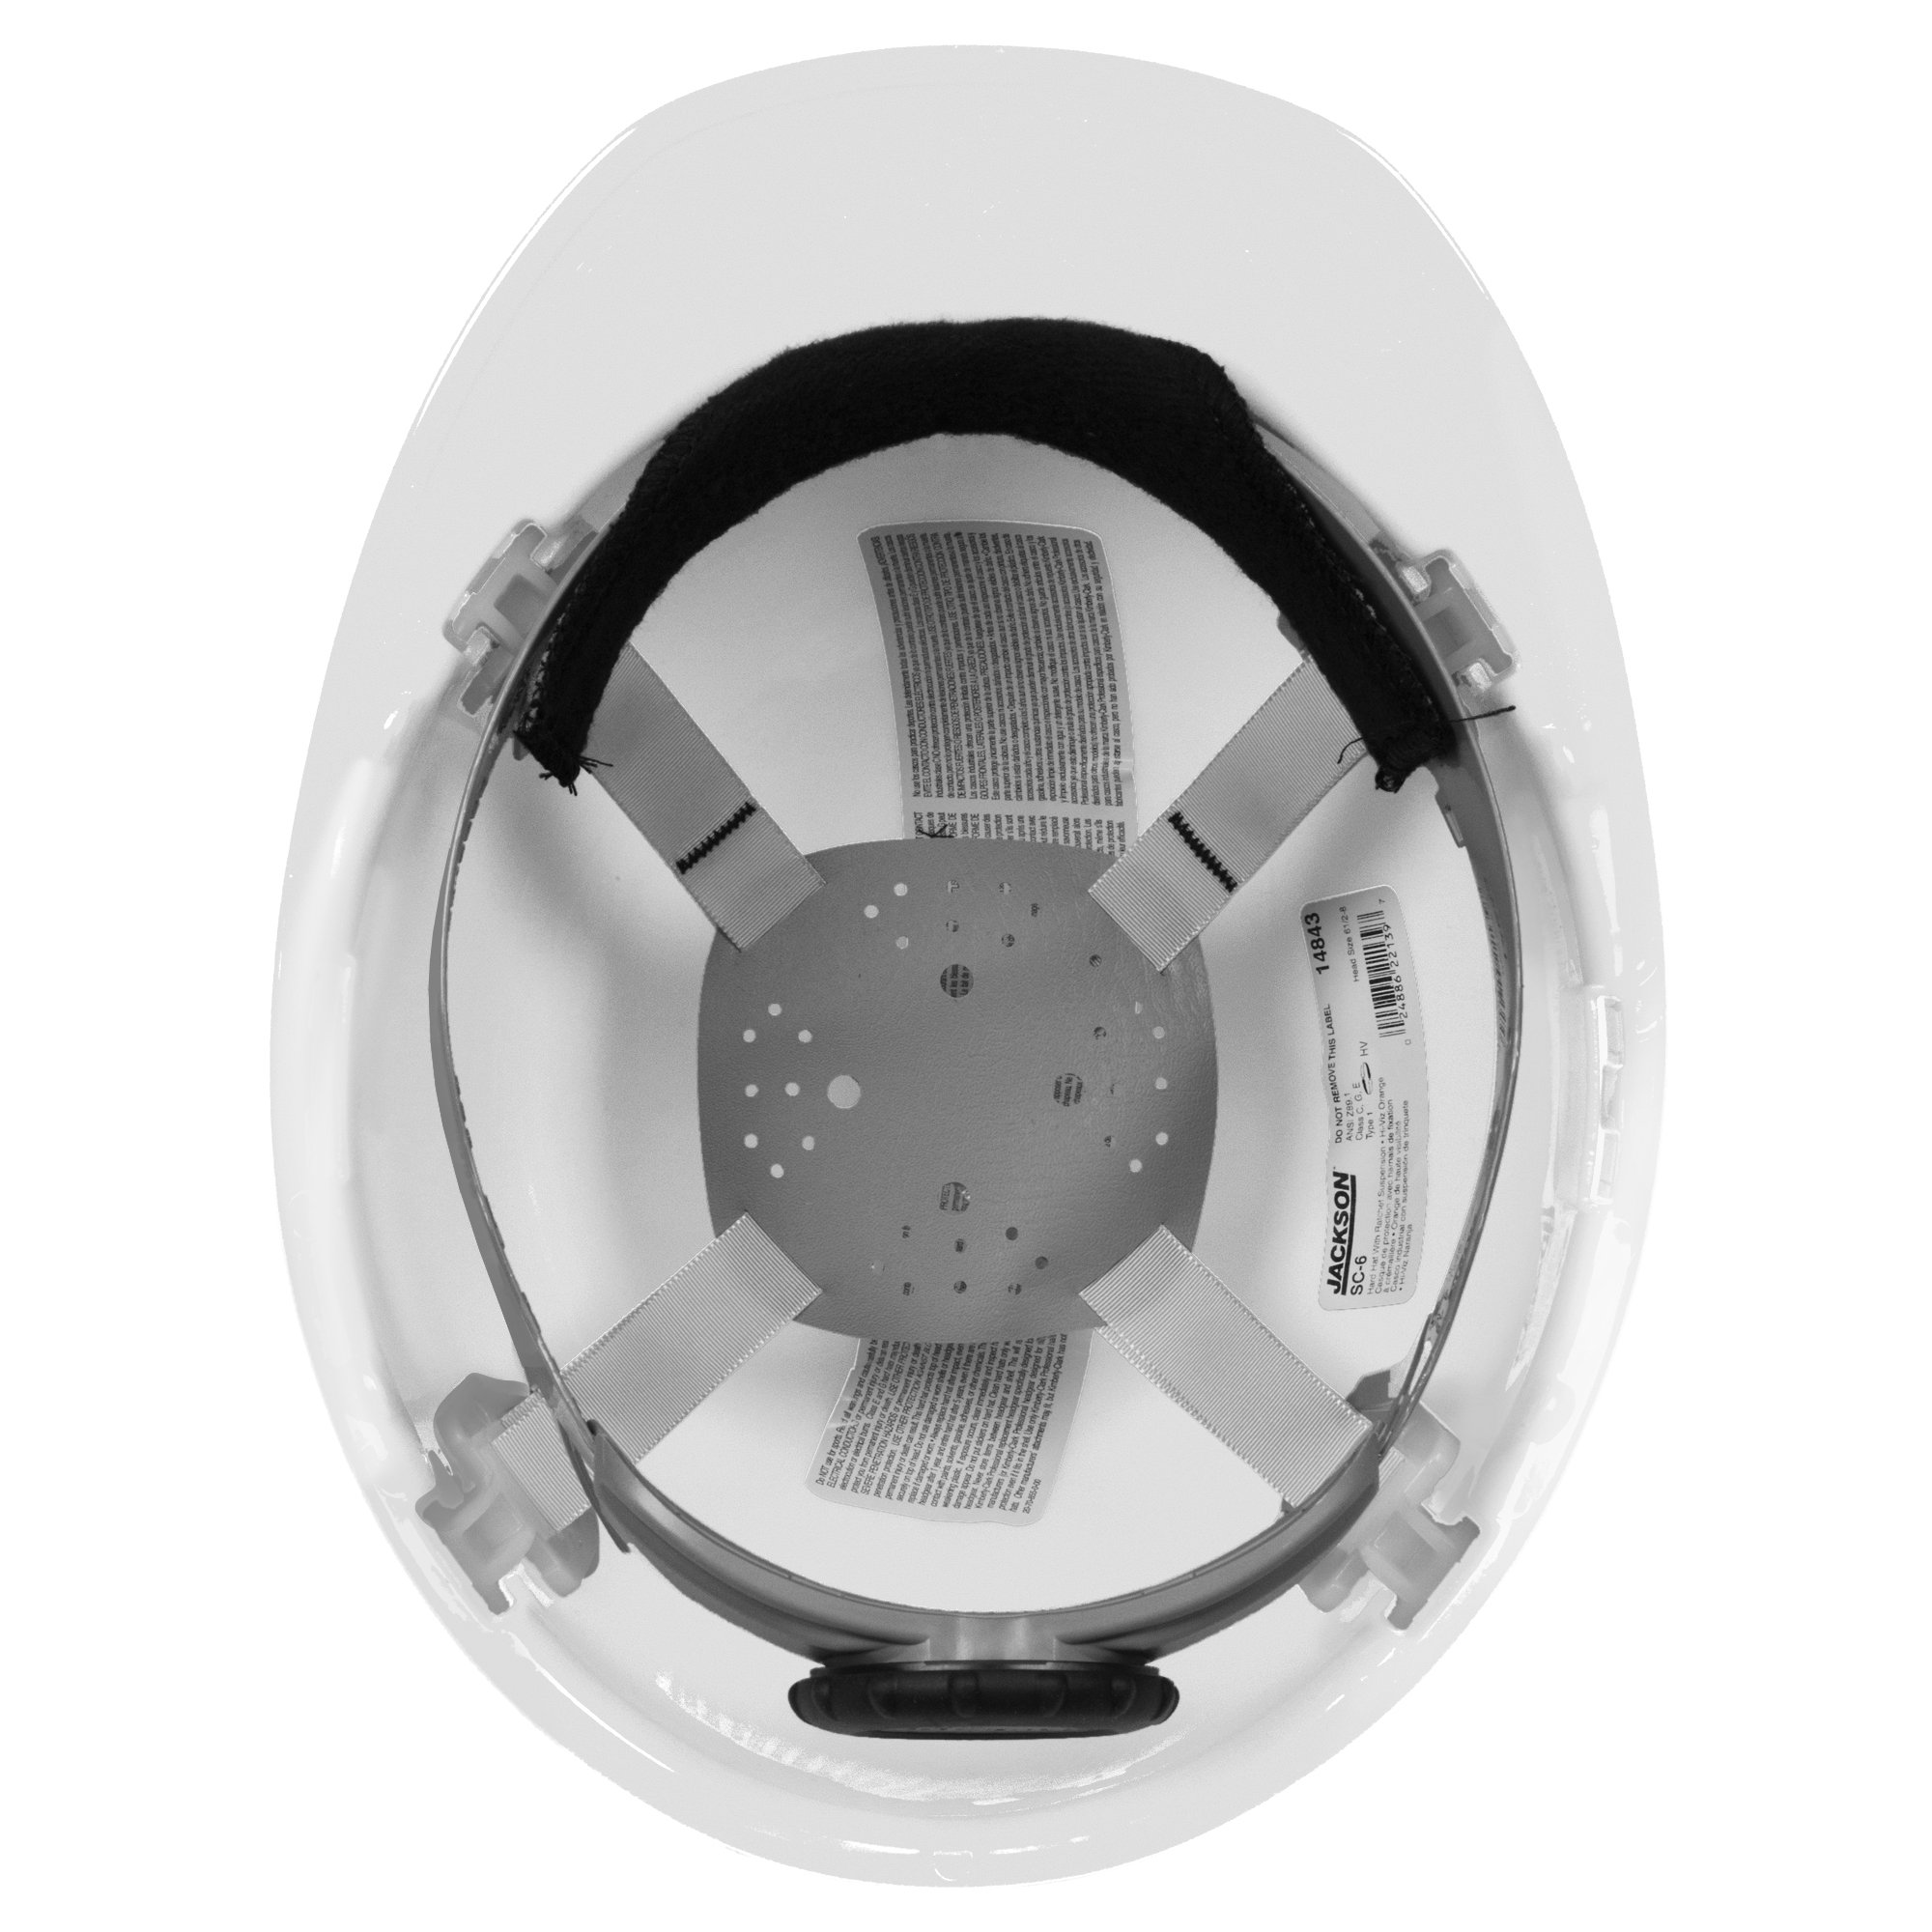 Jackson Safety SC-6 Hard Hat (14834), 4-Point Ratchet Suspension, Smooth Dome, Meets ANSI, White, 12 / Case by Jackson Safety (Image #2)